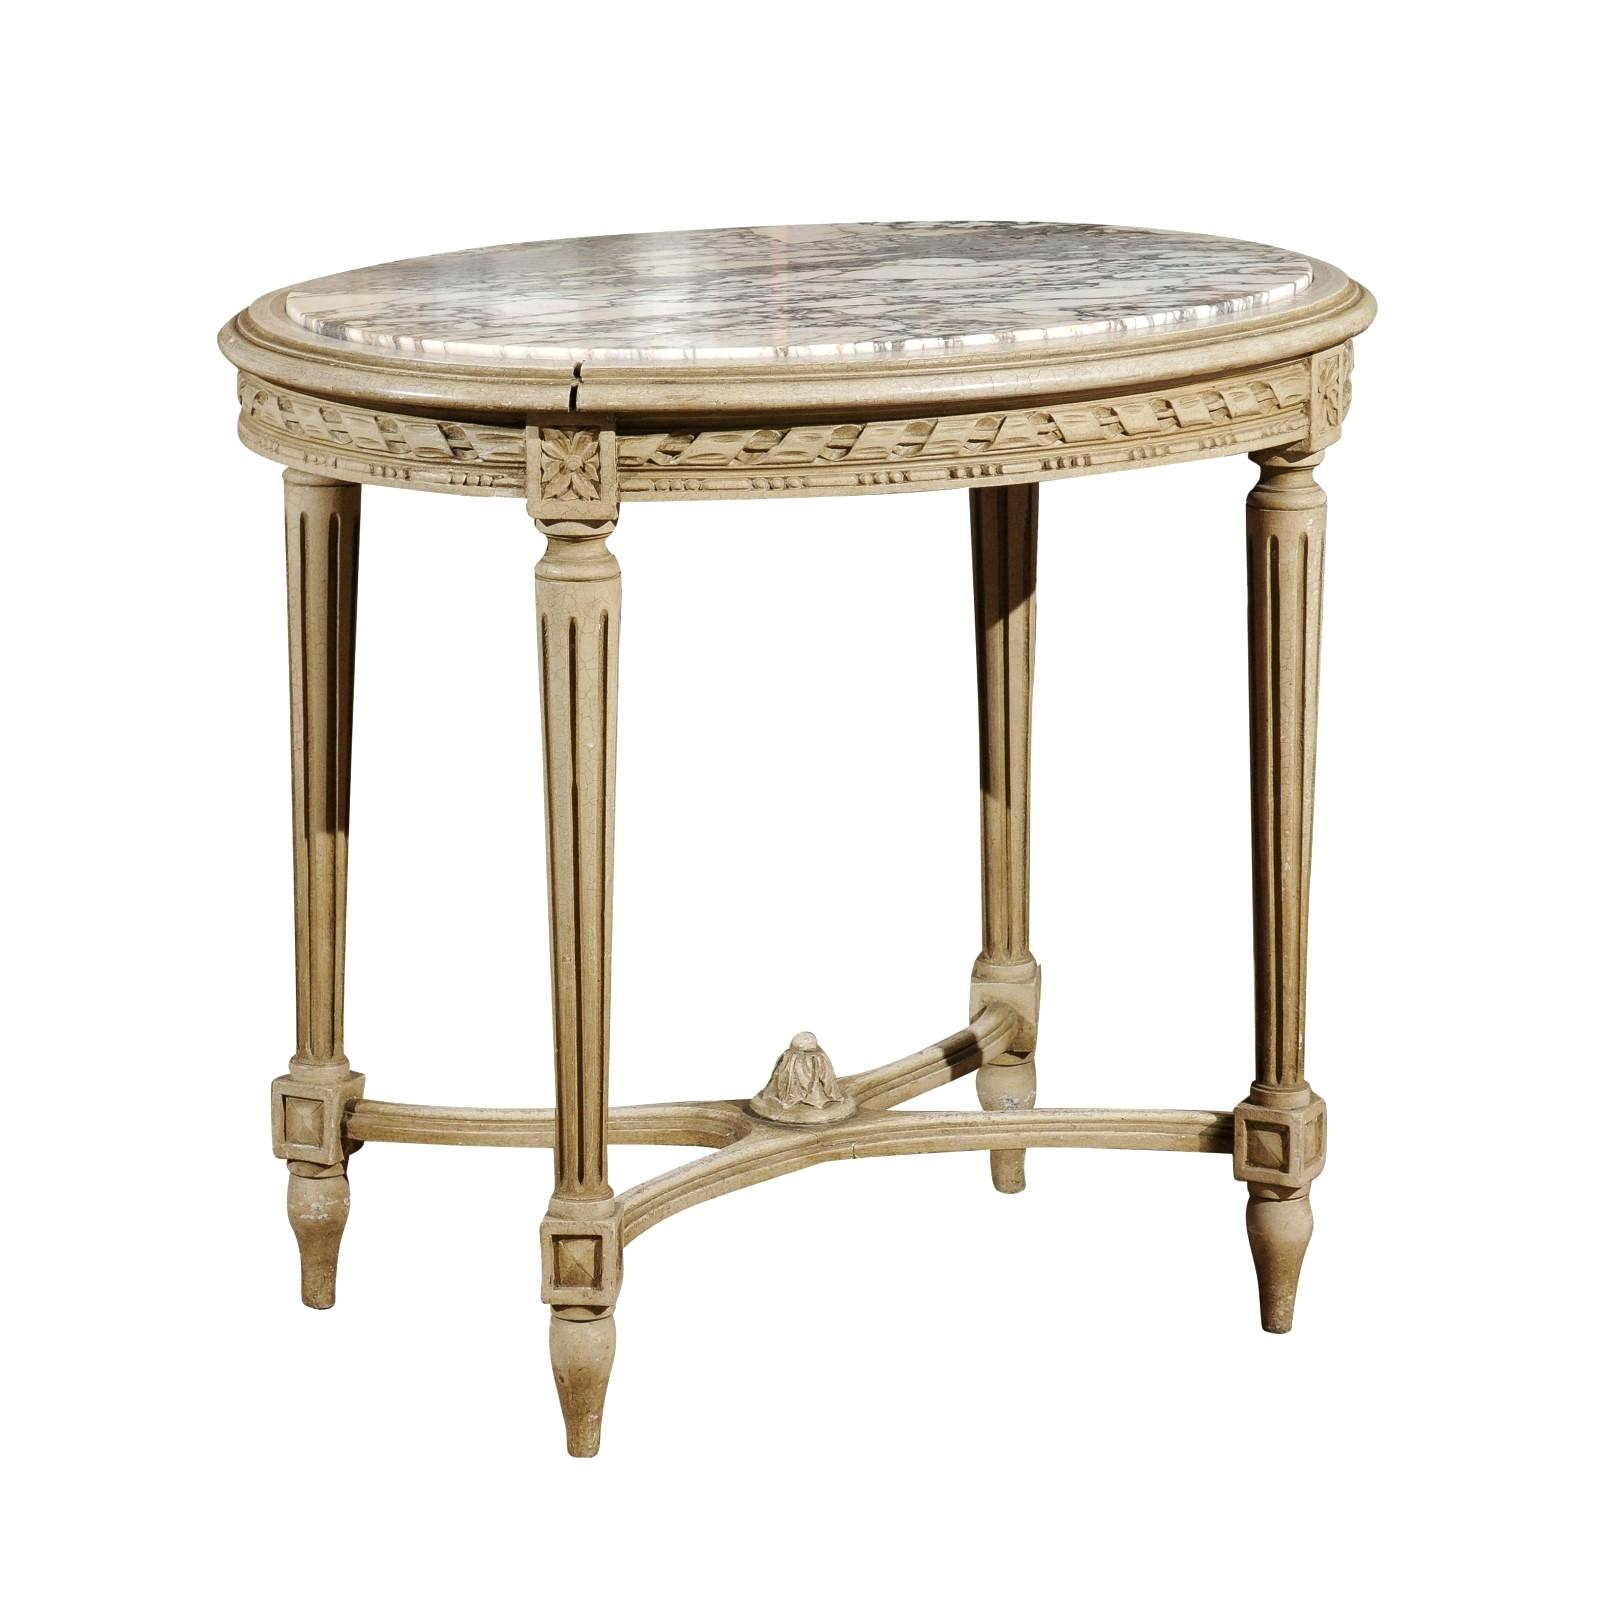 oval accent table vupad xvi style french with white veined marble top for small tables simplify pedestal rustic farm modern coffee ideas wood floor door threshold pier side target